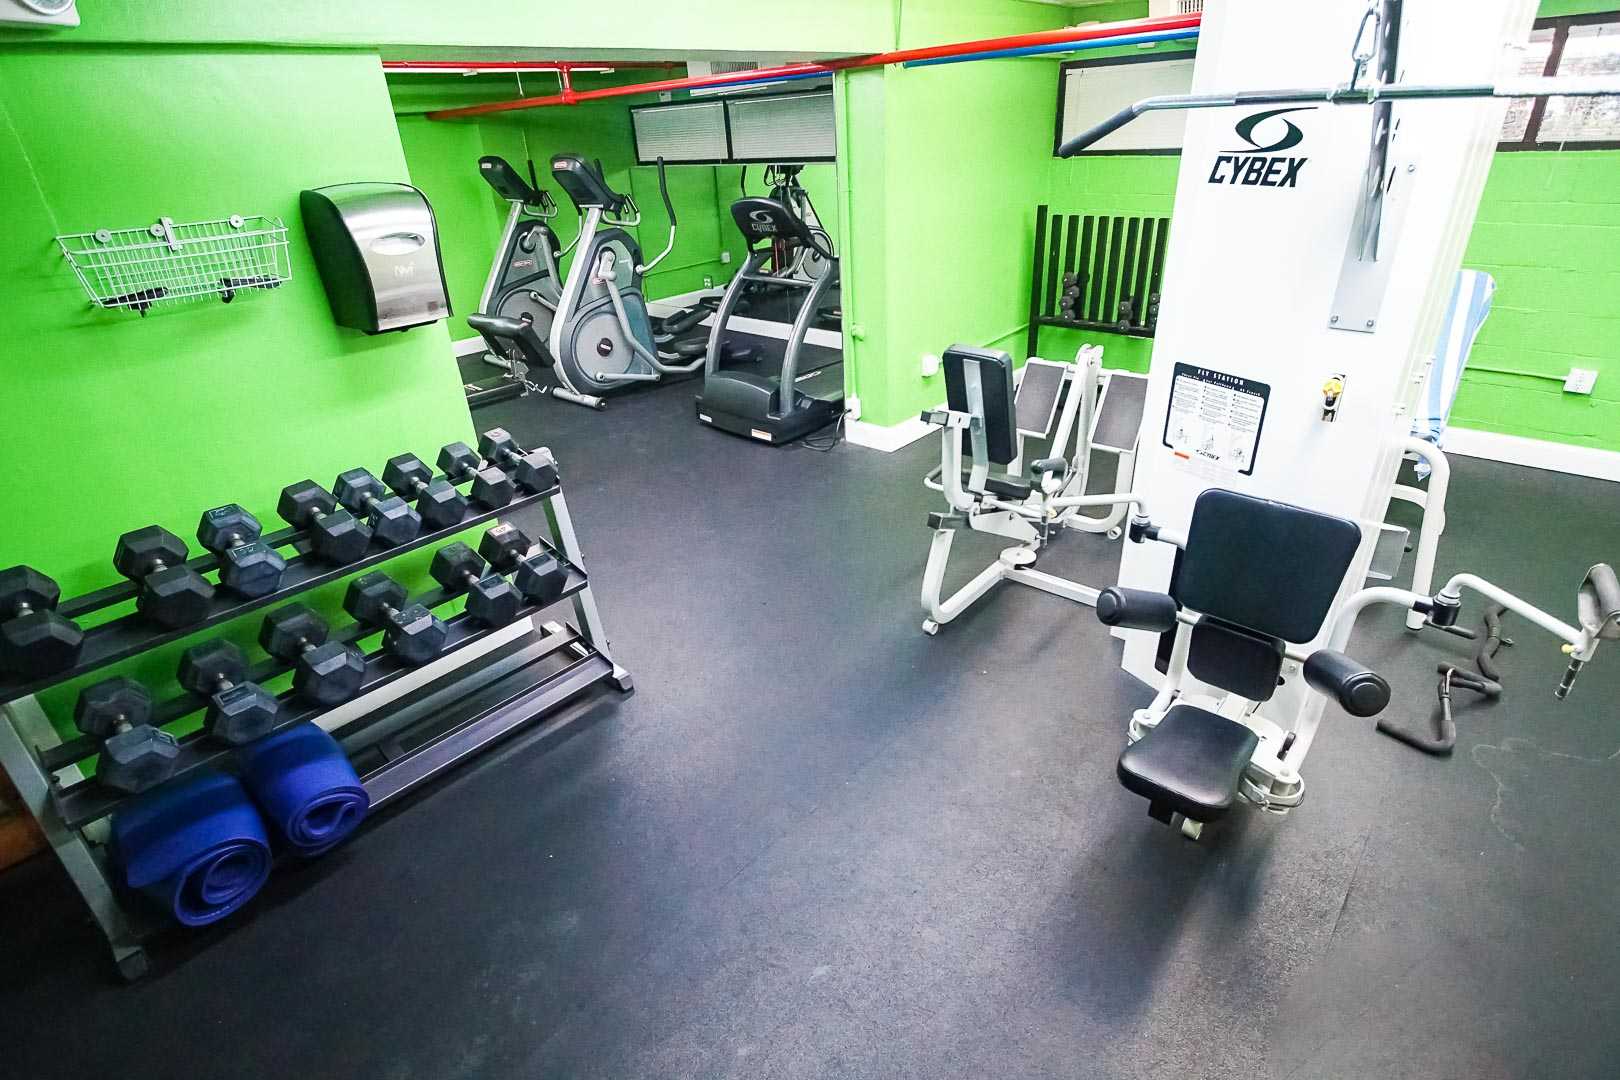 A fully equipped exercise room at VRI's Ft. Lauderdale Beach Resort in Florida.